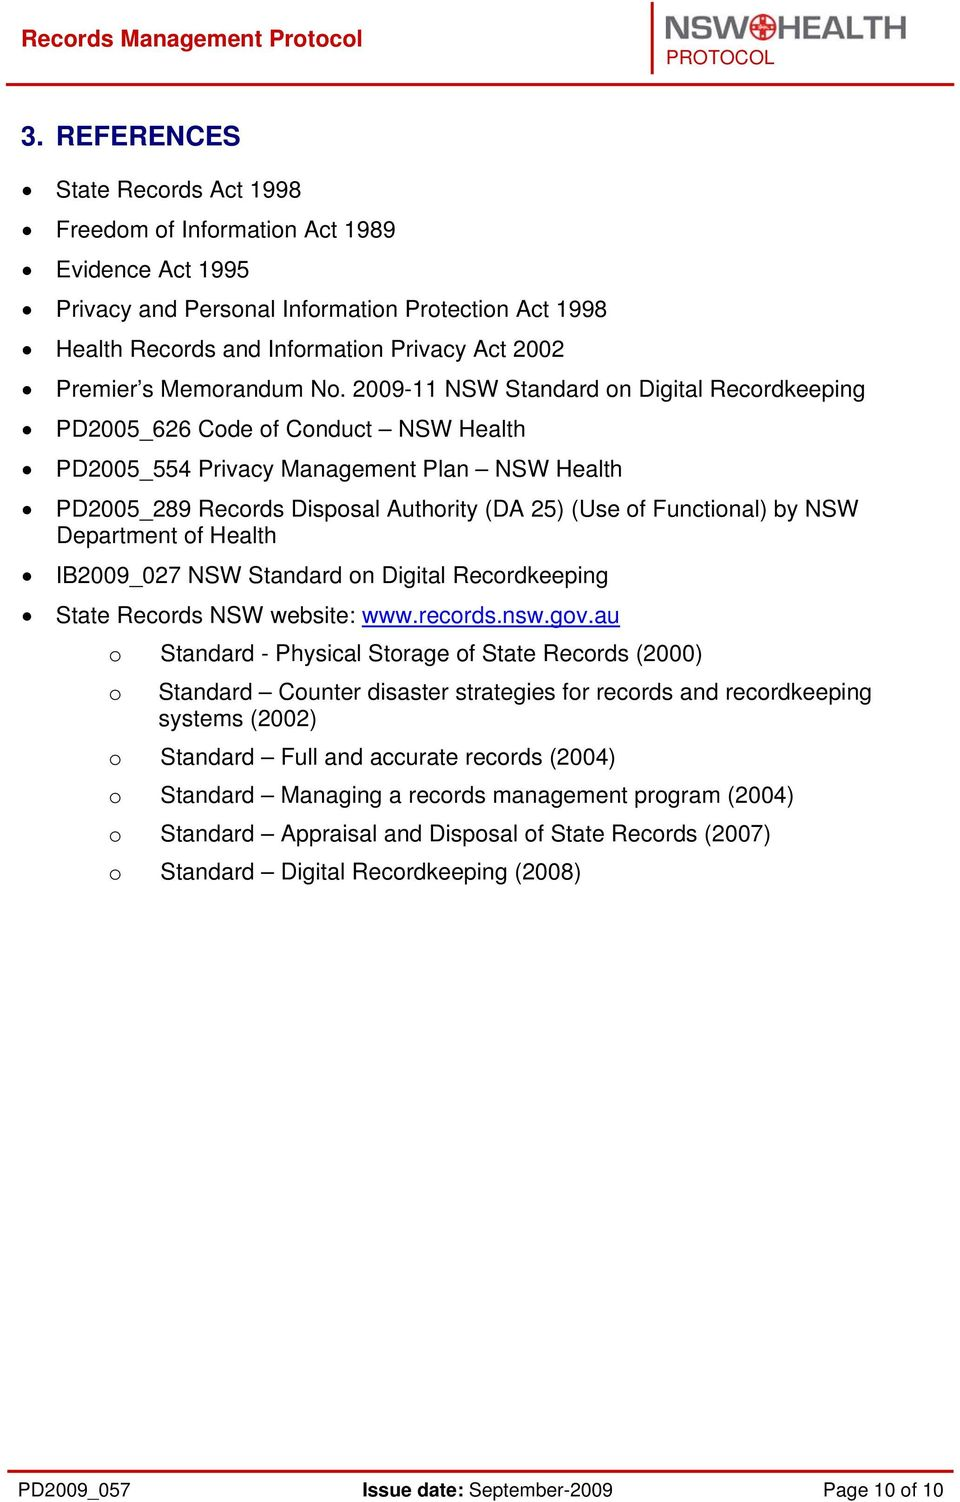 2009-11 NSW Standard on Digital Recordkeeping PD2005_626 Code of Conduct NSW Health PD2005_554 Privacy Management Plan NSW Health PD2005_289 Records Disposal Authority (DA 25) (Use of Functional) by